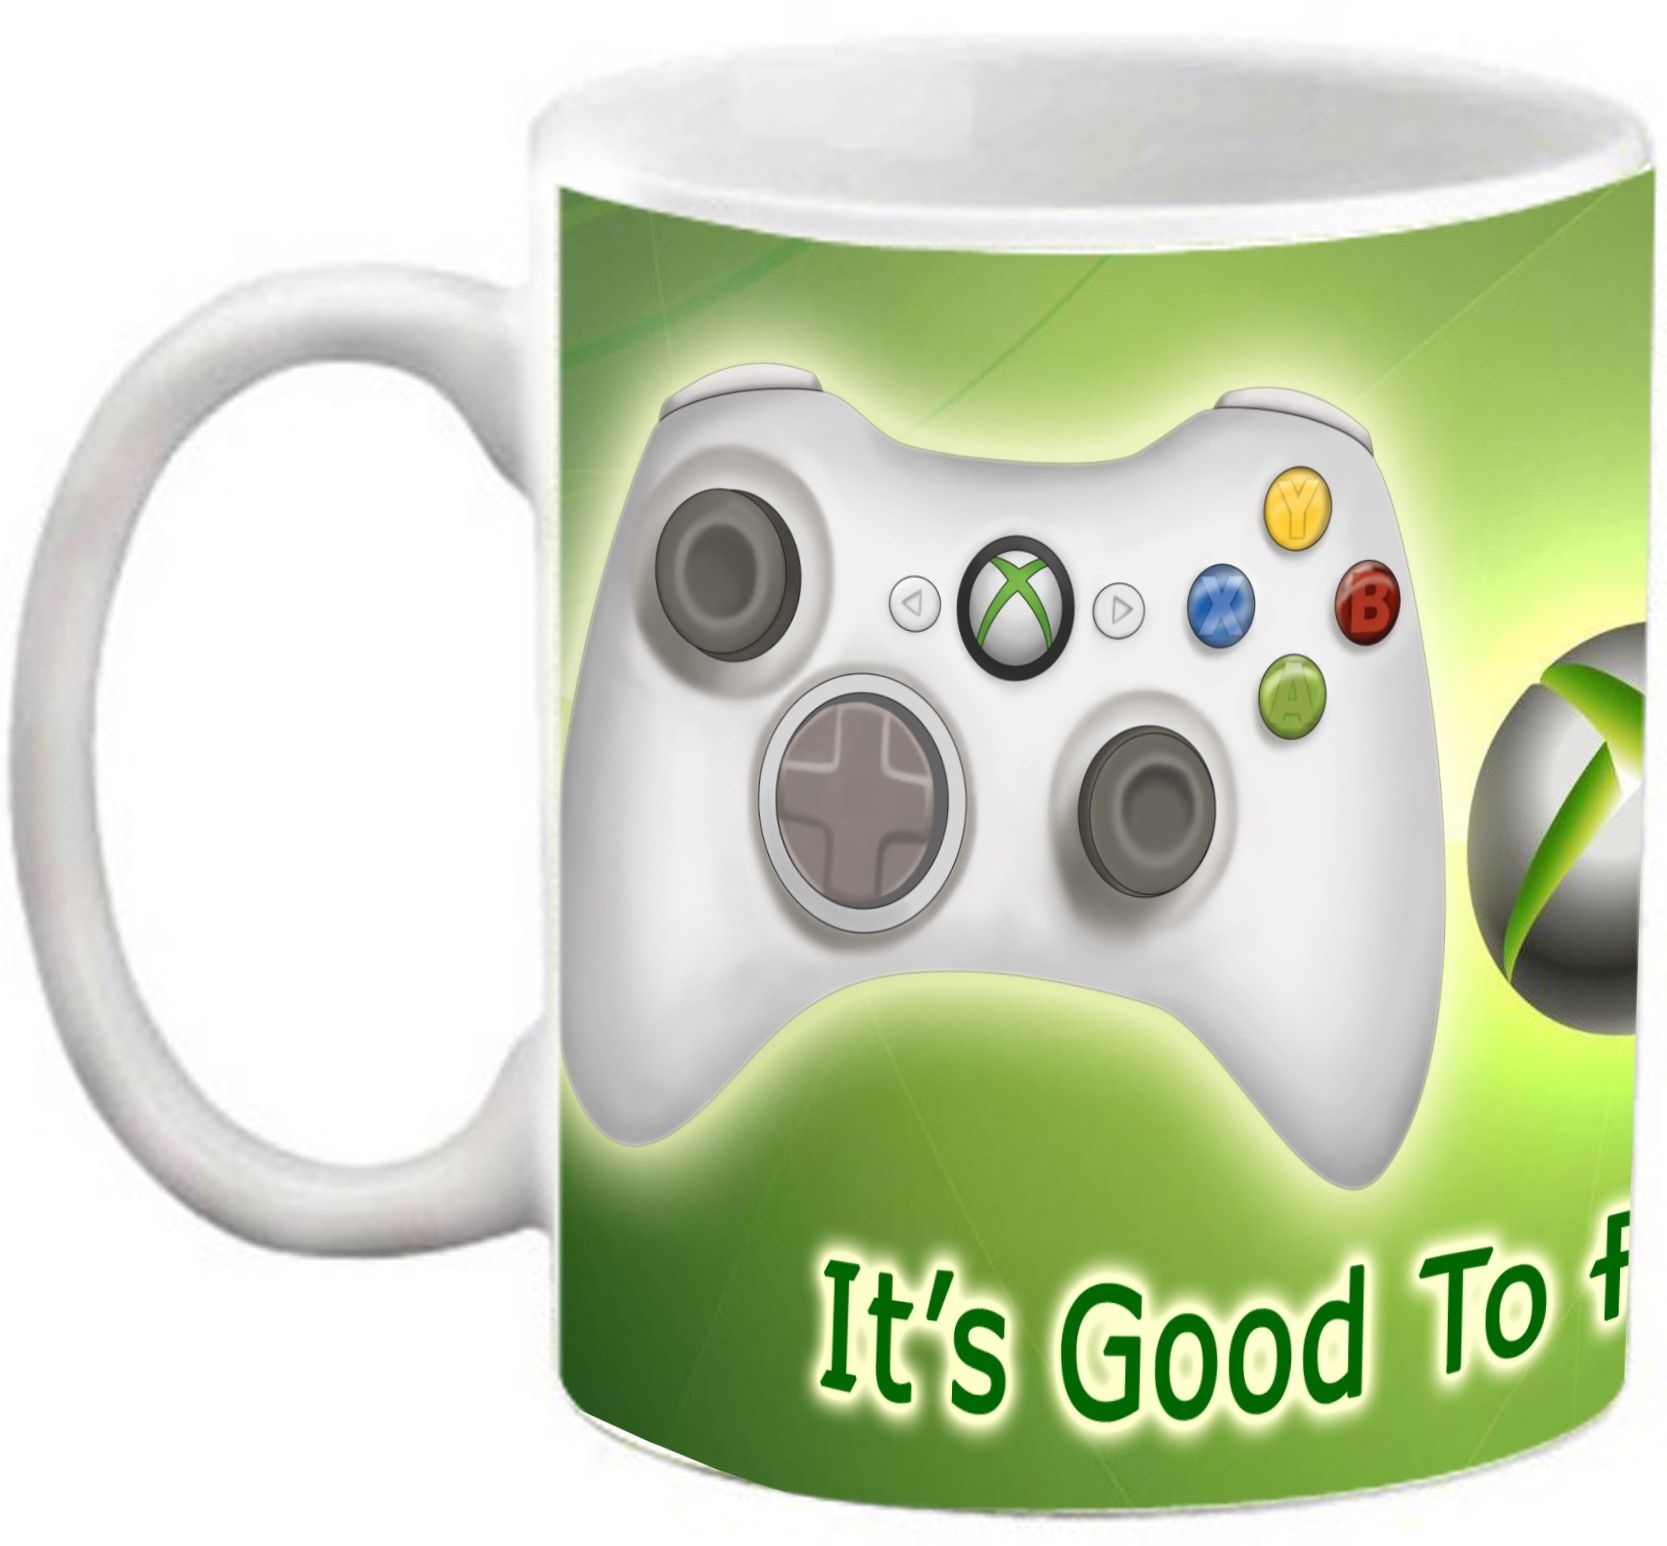 EFW Xbox Its Good To Play Together Ceramic Mug Price in